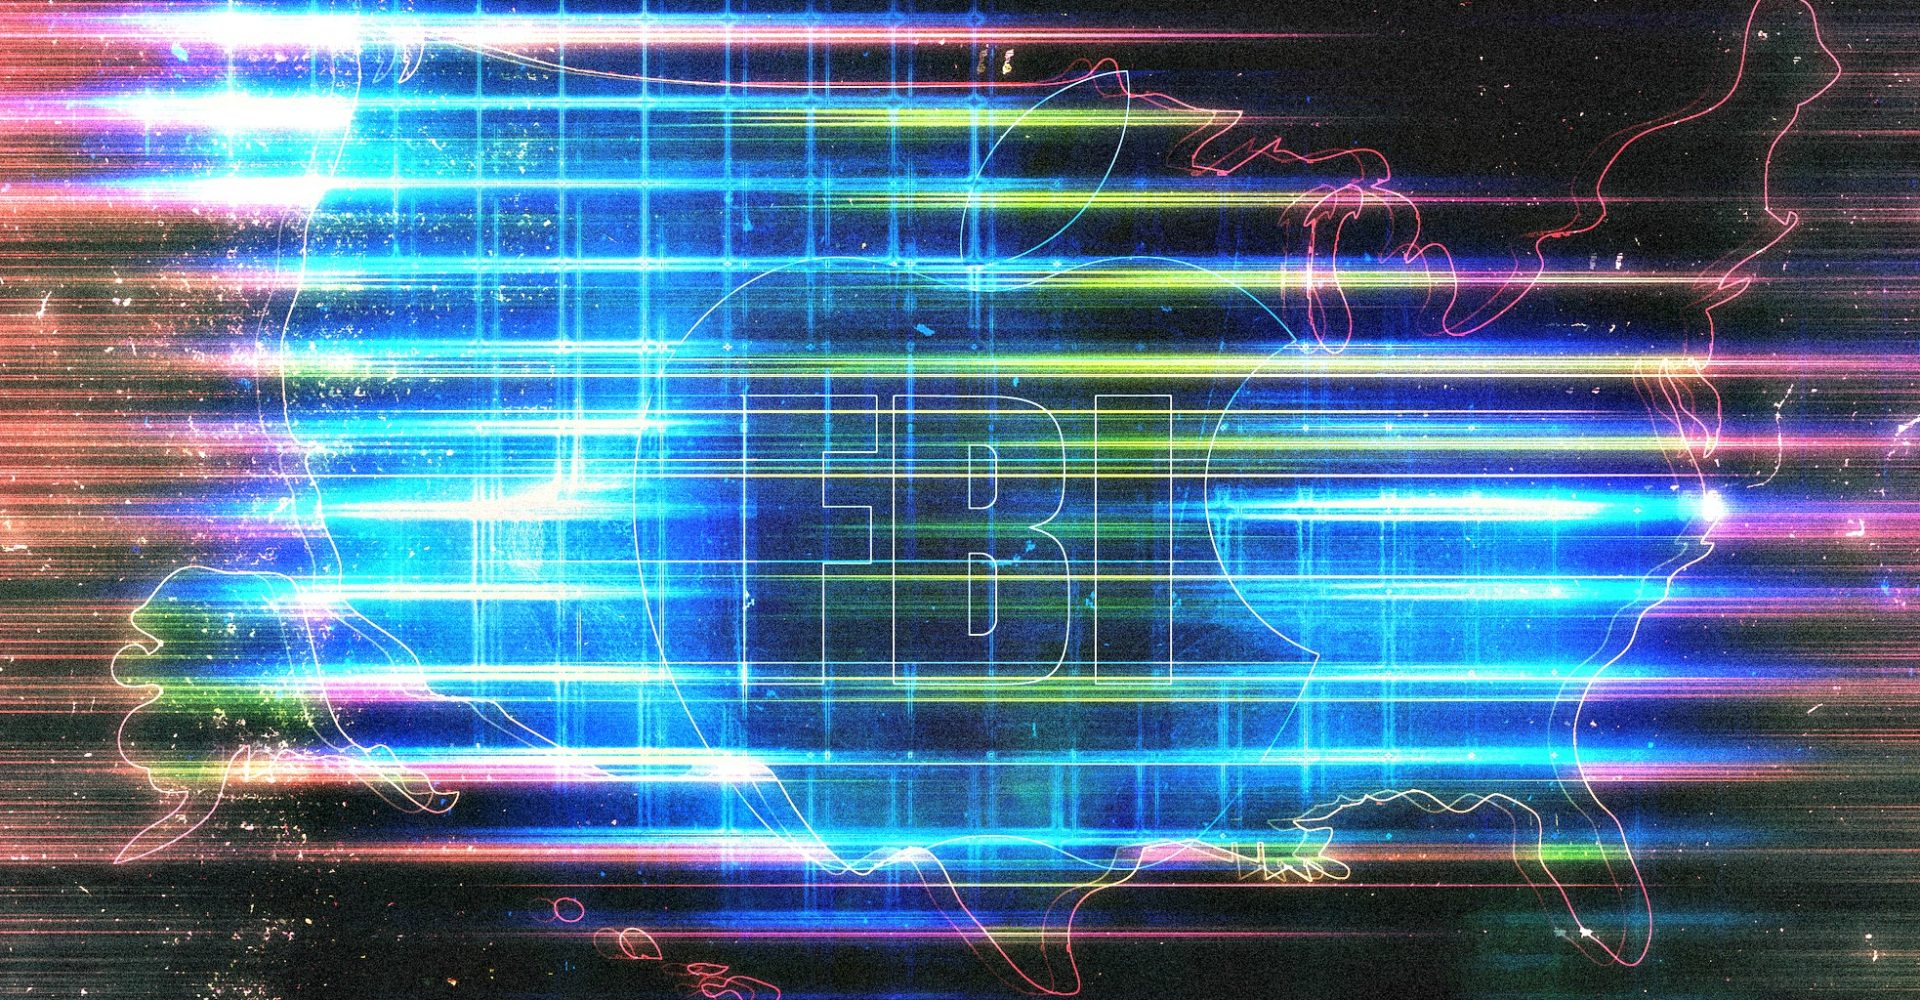 The Apple - FBI Electronic Encryption Fight RGB Triptych v1.3 (adapted) (Image by Surian Soosay Folgen [CC BY 2.0] via flickr)